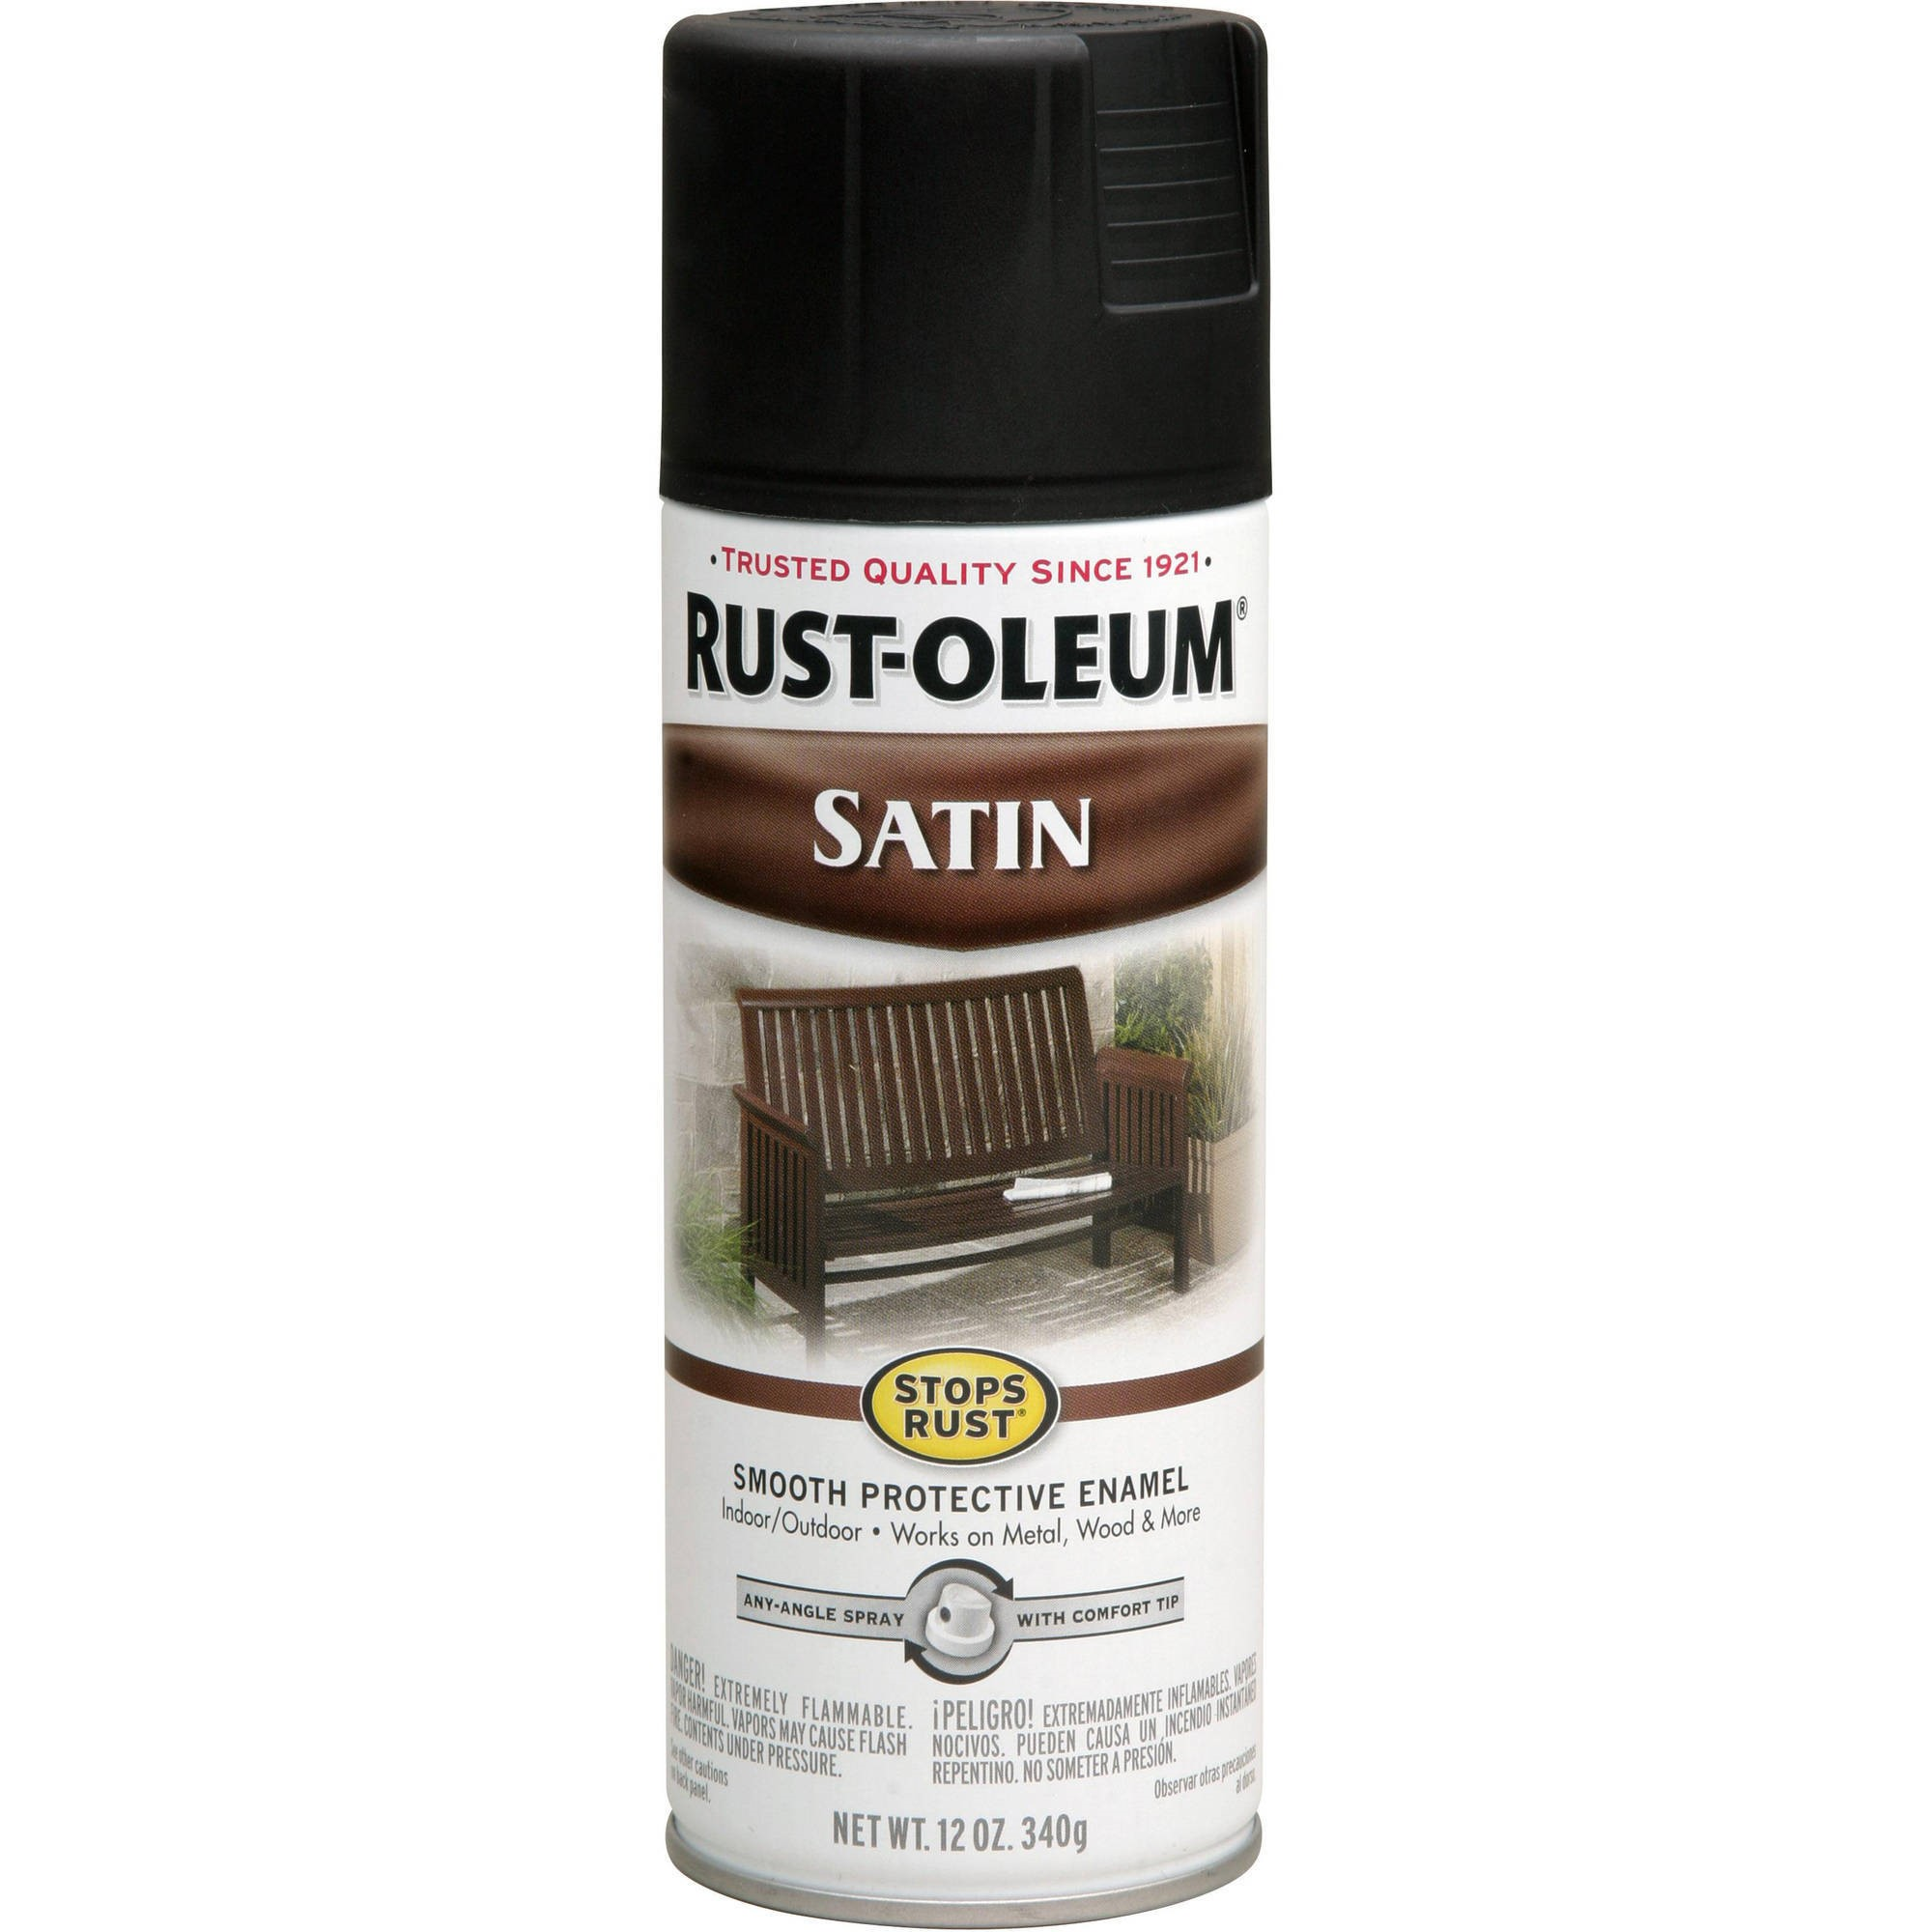 Rust-Oleum Stops Rust Satin Spray Paint